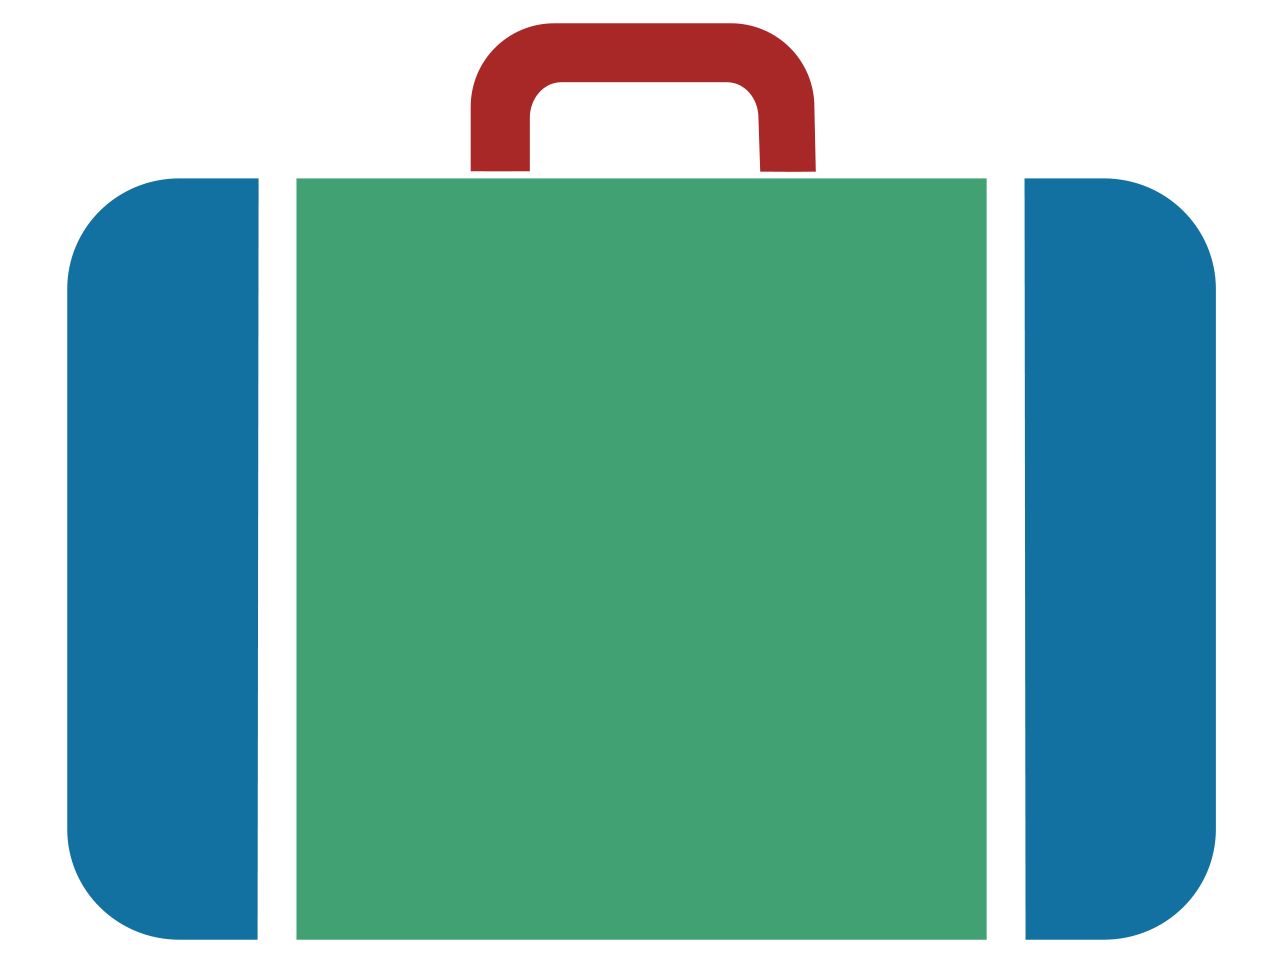 File:Suitcase icon blue green red jpg to svg v1.svg - Wikimedia ...: cliparts.co/luggage-icon